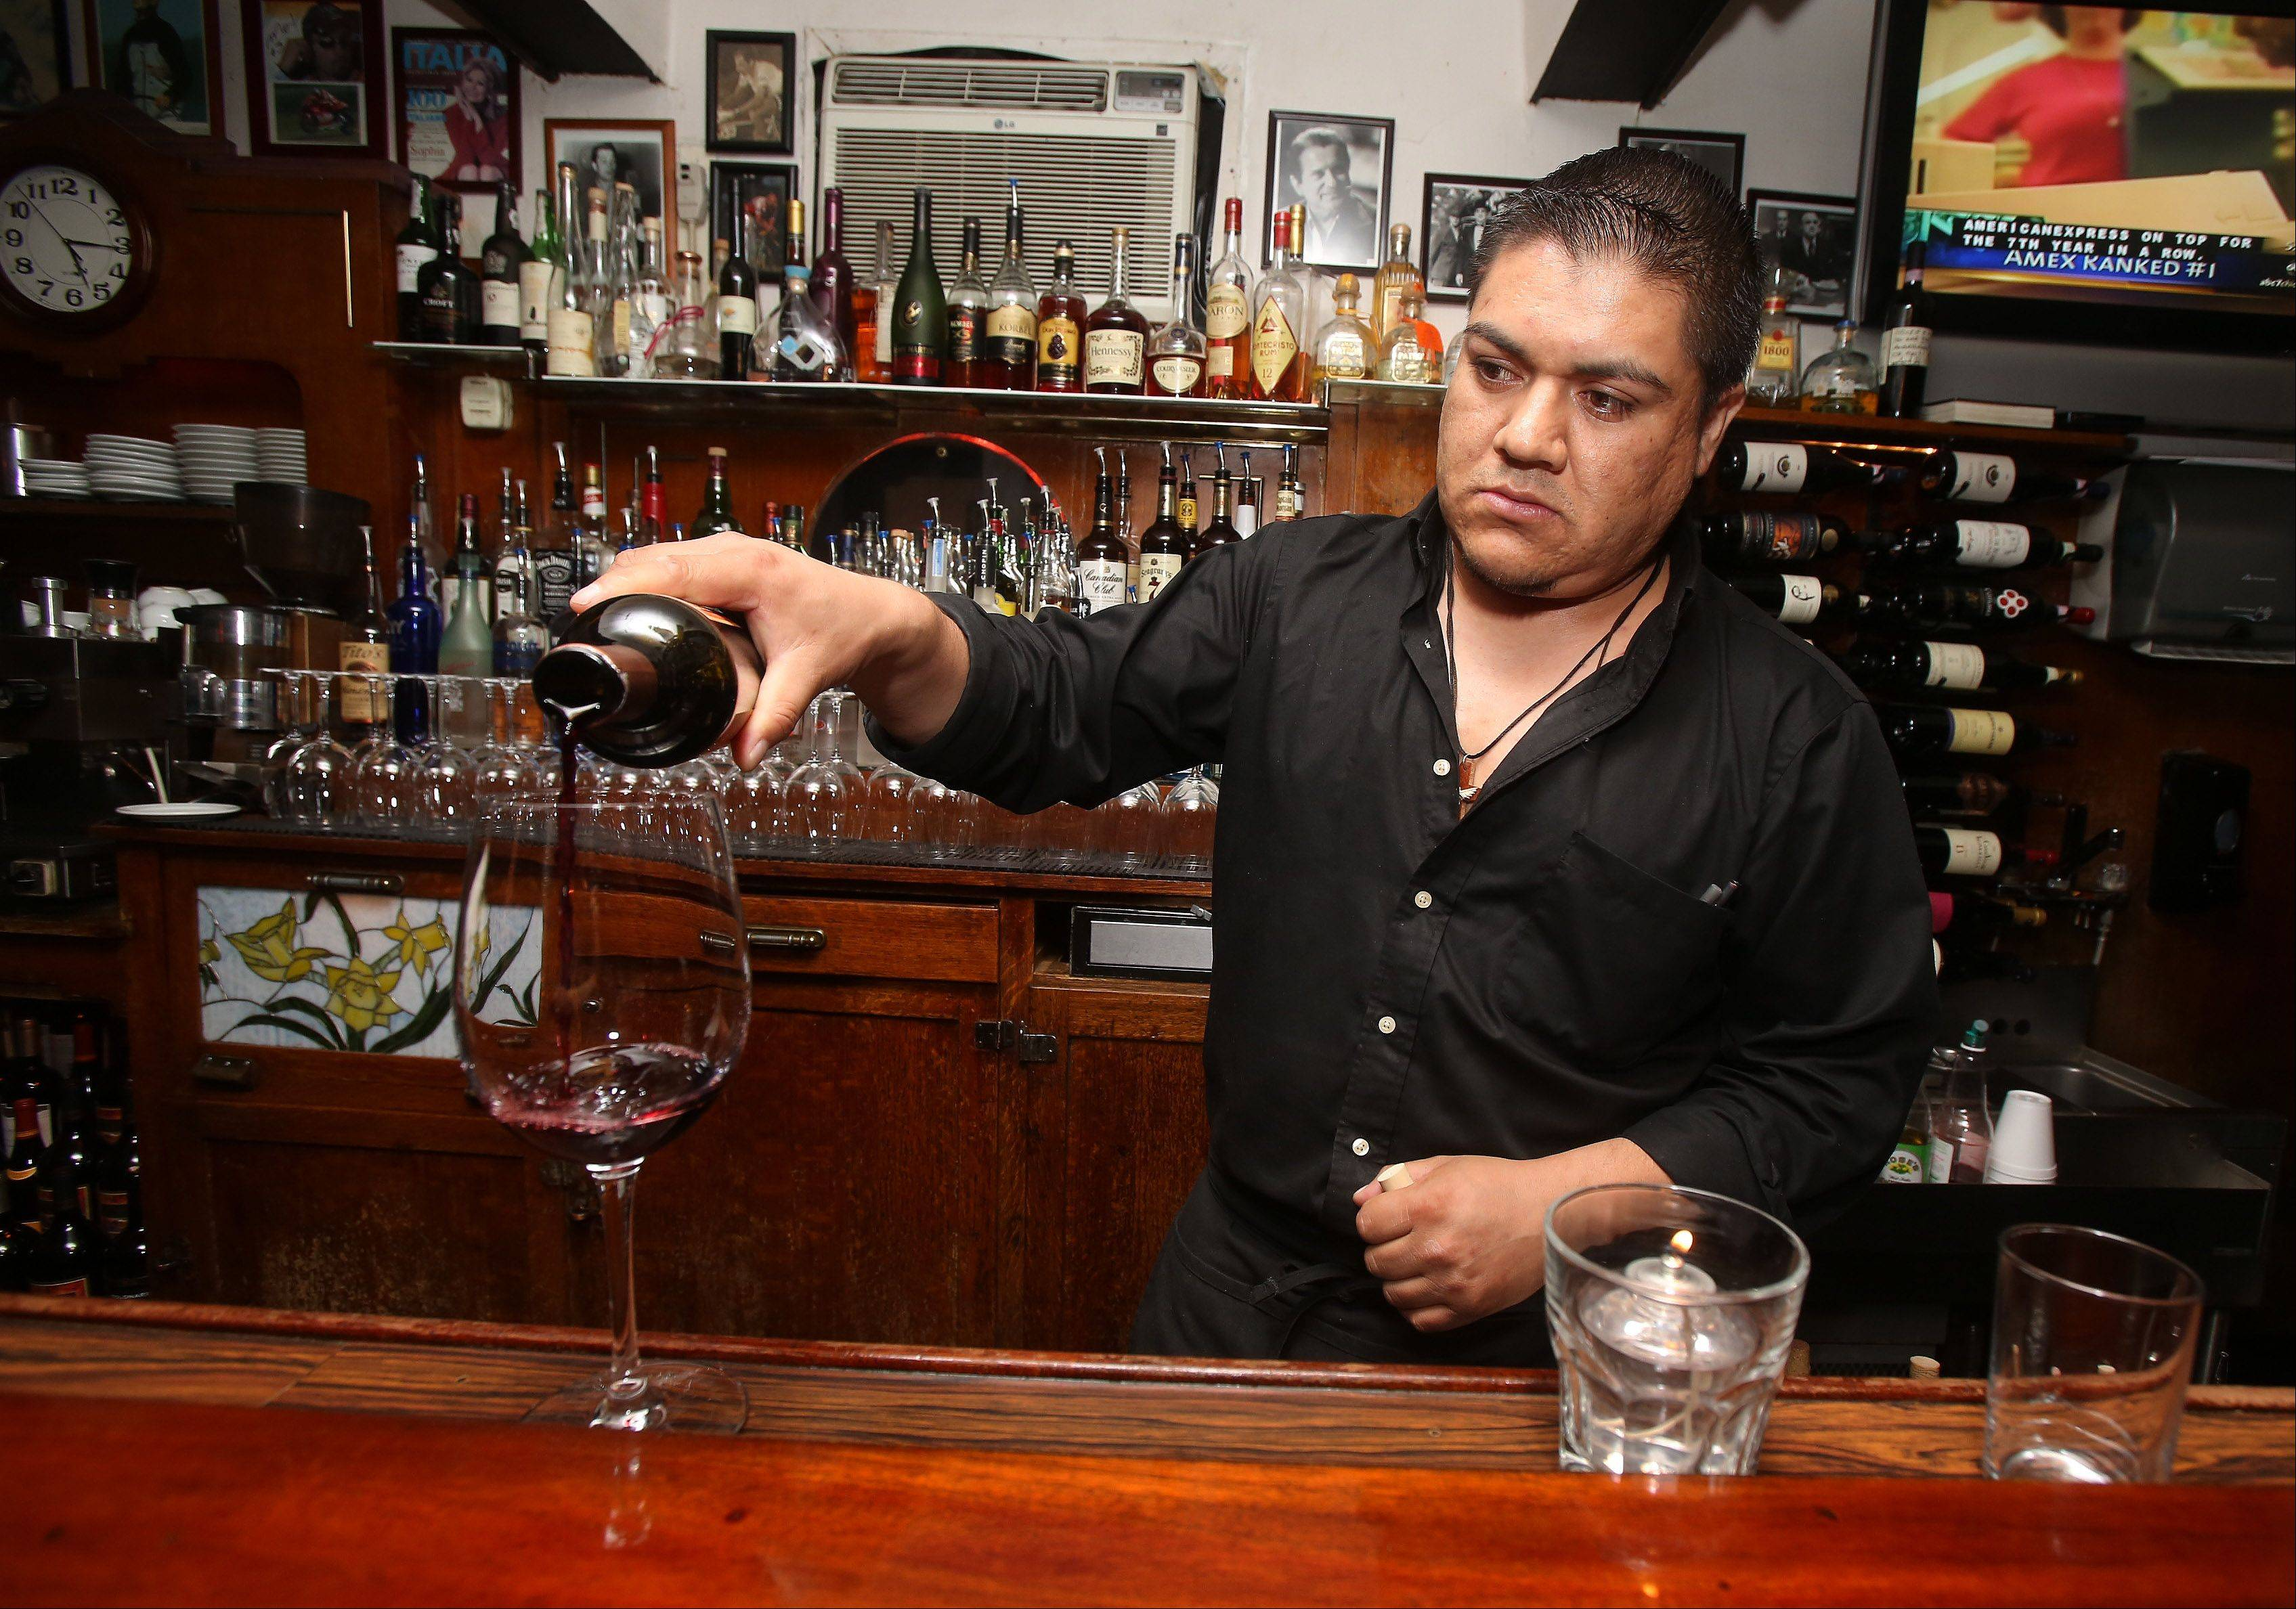 Bartender Joel Gaytan pours a glass of wine in the bar at DiPiero's Ristorante in Lake Zurich.